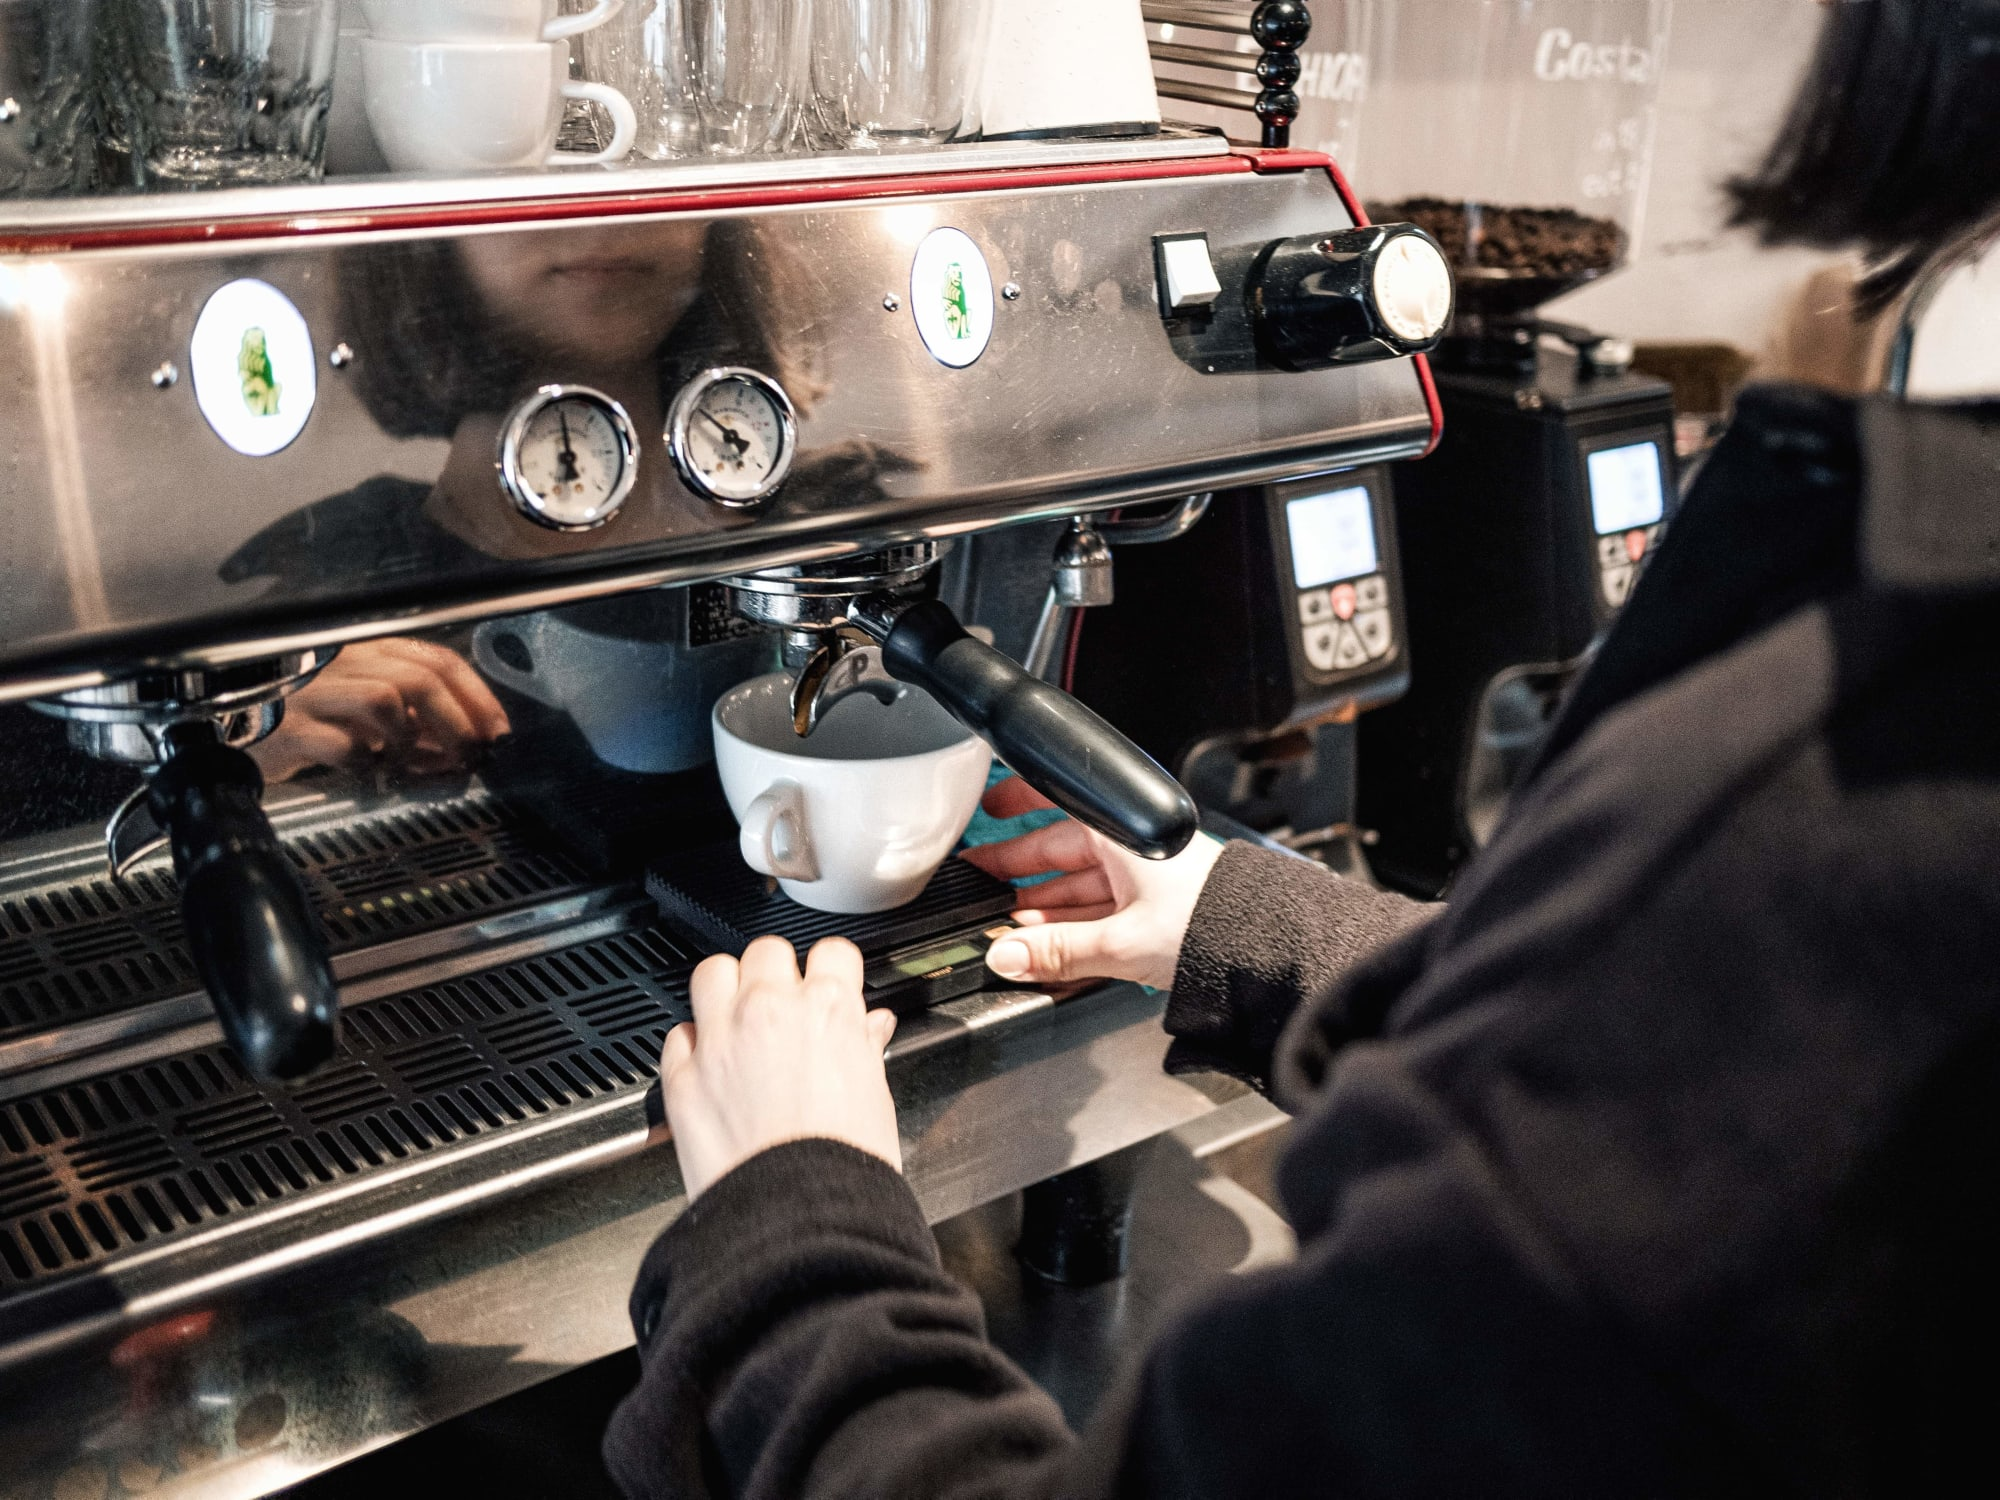 Djäkne Coffee Bar is a specialty coffee bar that is situated in the city centre of Malmö in Sweden.